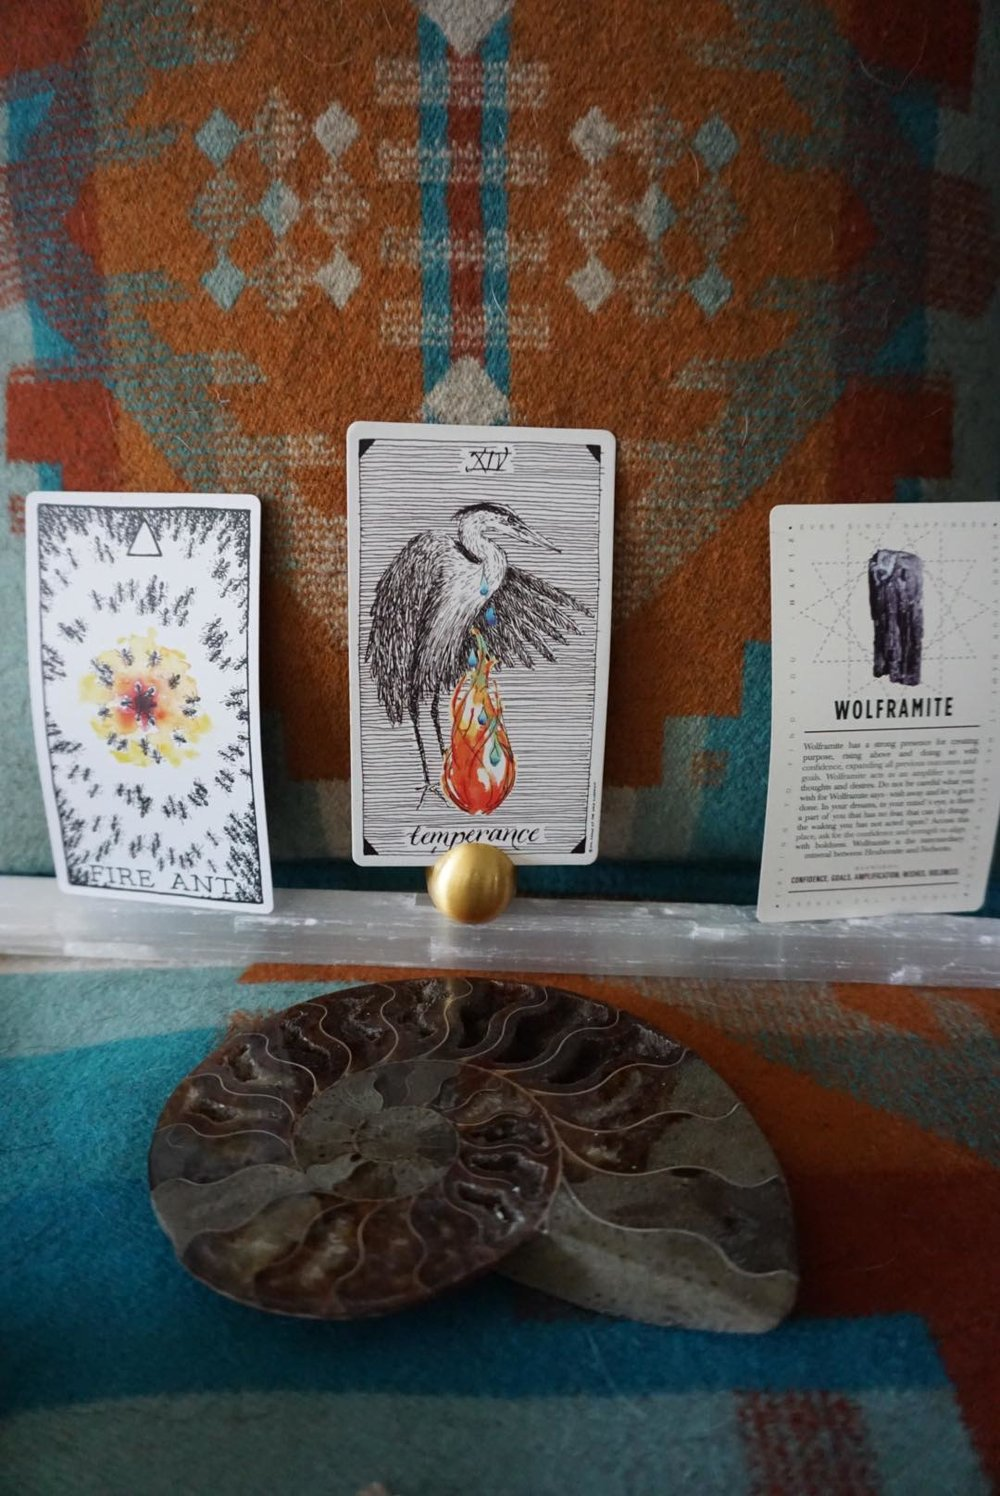 Pisces & Pisces Rising - You are the elixir for temperate roads ahead…